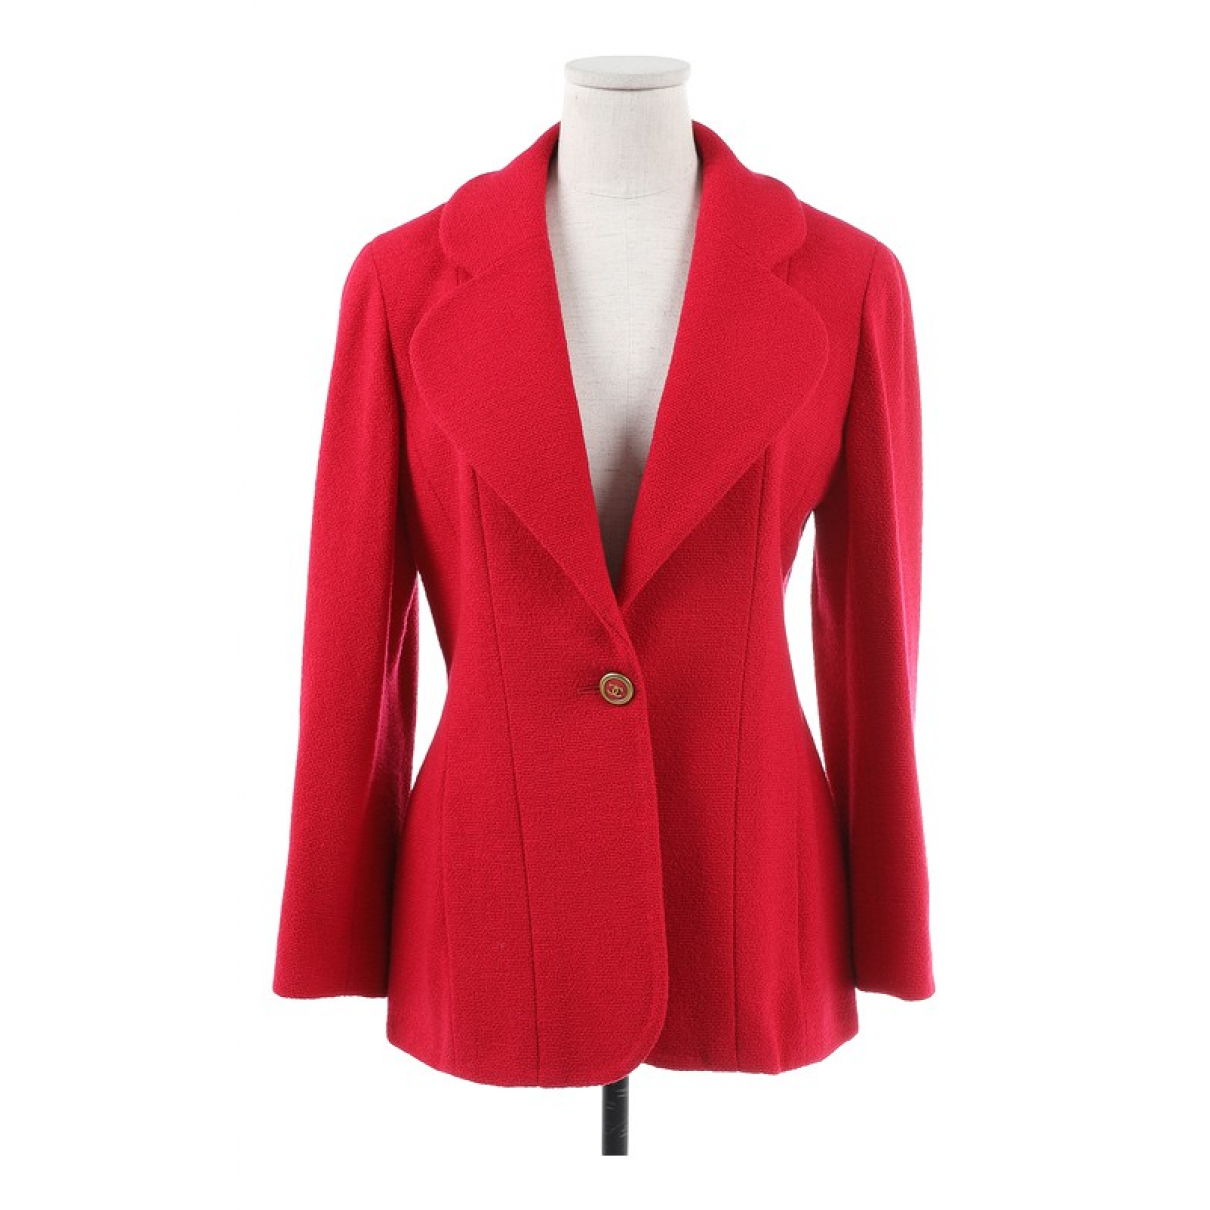 Chanel \N Pink Wool jacket for Women 40 FR